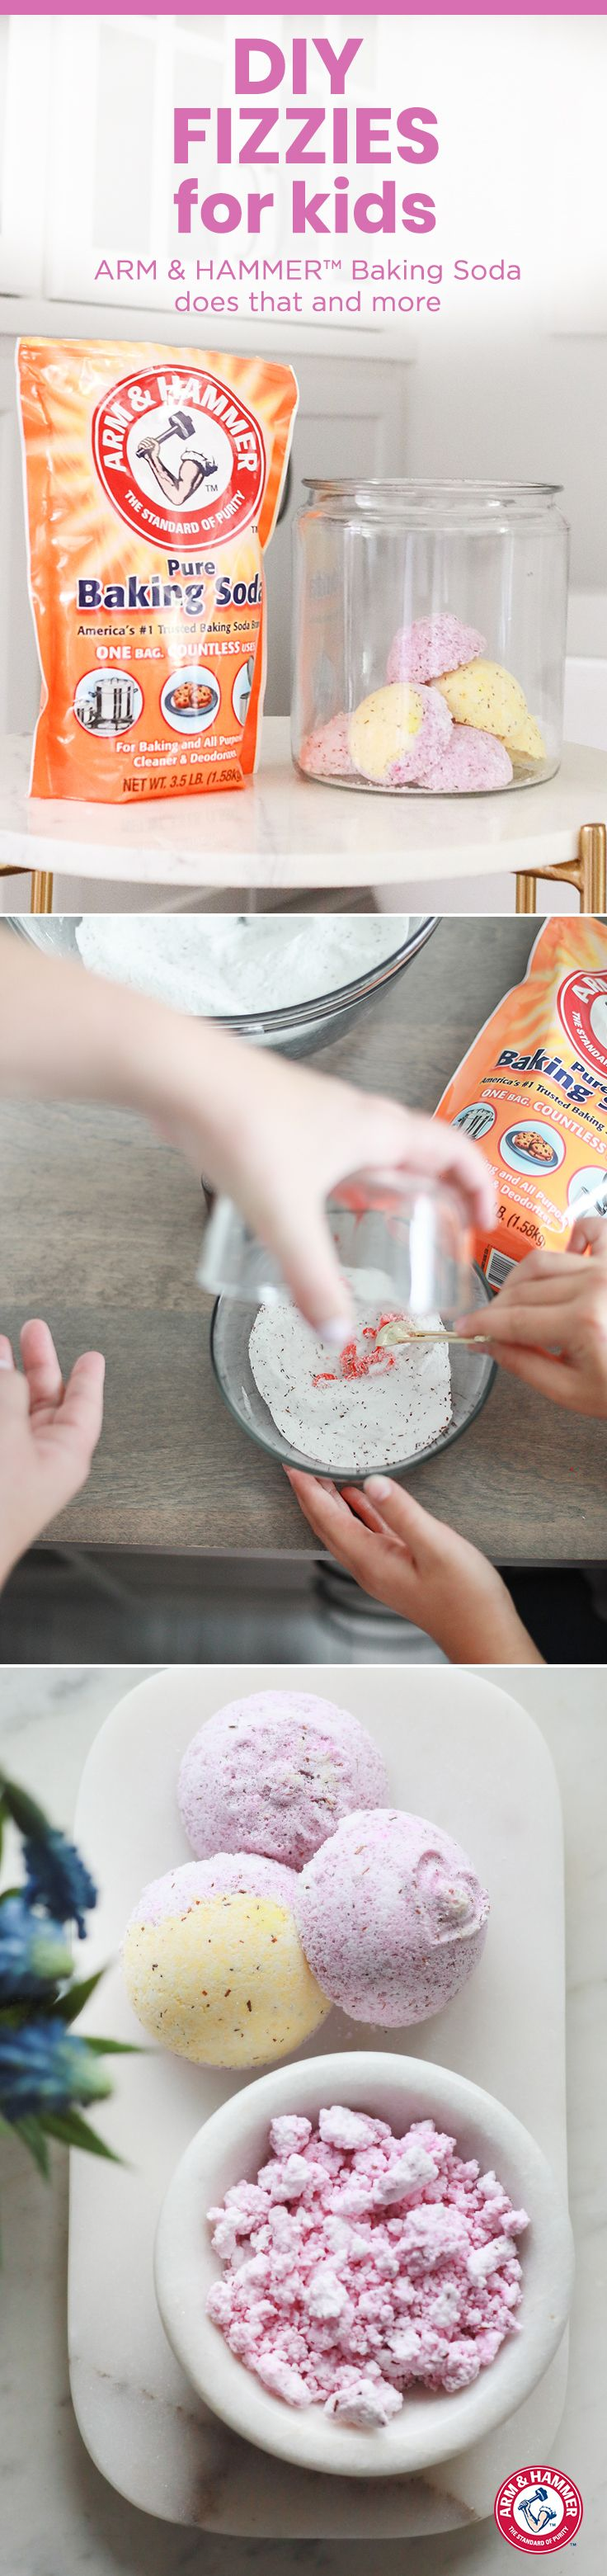 "Make bath time fun with fizzies! Step 1: Mix 2 tsp unsweetened lemon drink mix, 1 tsp flour or cornstarch, and 4 tsp ARM & HAMMER™ Baking Soda in a bowl. Step 2: Mix 4 tsp baby oil or mineral oil with 3-6 drops of food coloring in a separate bowl. Step 3: Slowly mix the colored mixture in the dry ingredients. Step 4: Make small 1"" balls of mixture.  Place on wax paper to dry. It takes 24-48 hours for fizzies to dry completely. Add fizzies to your regular bath - they make great gifts too!"